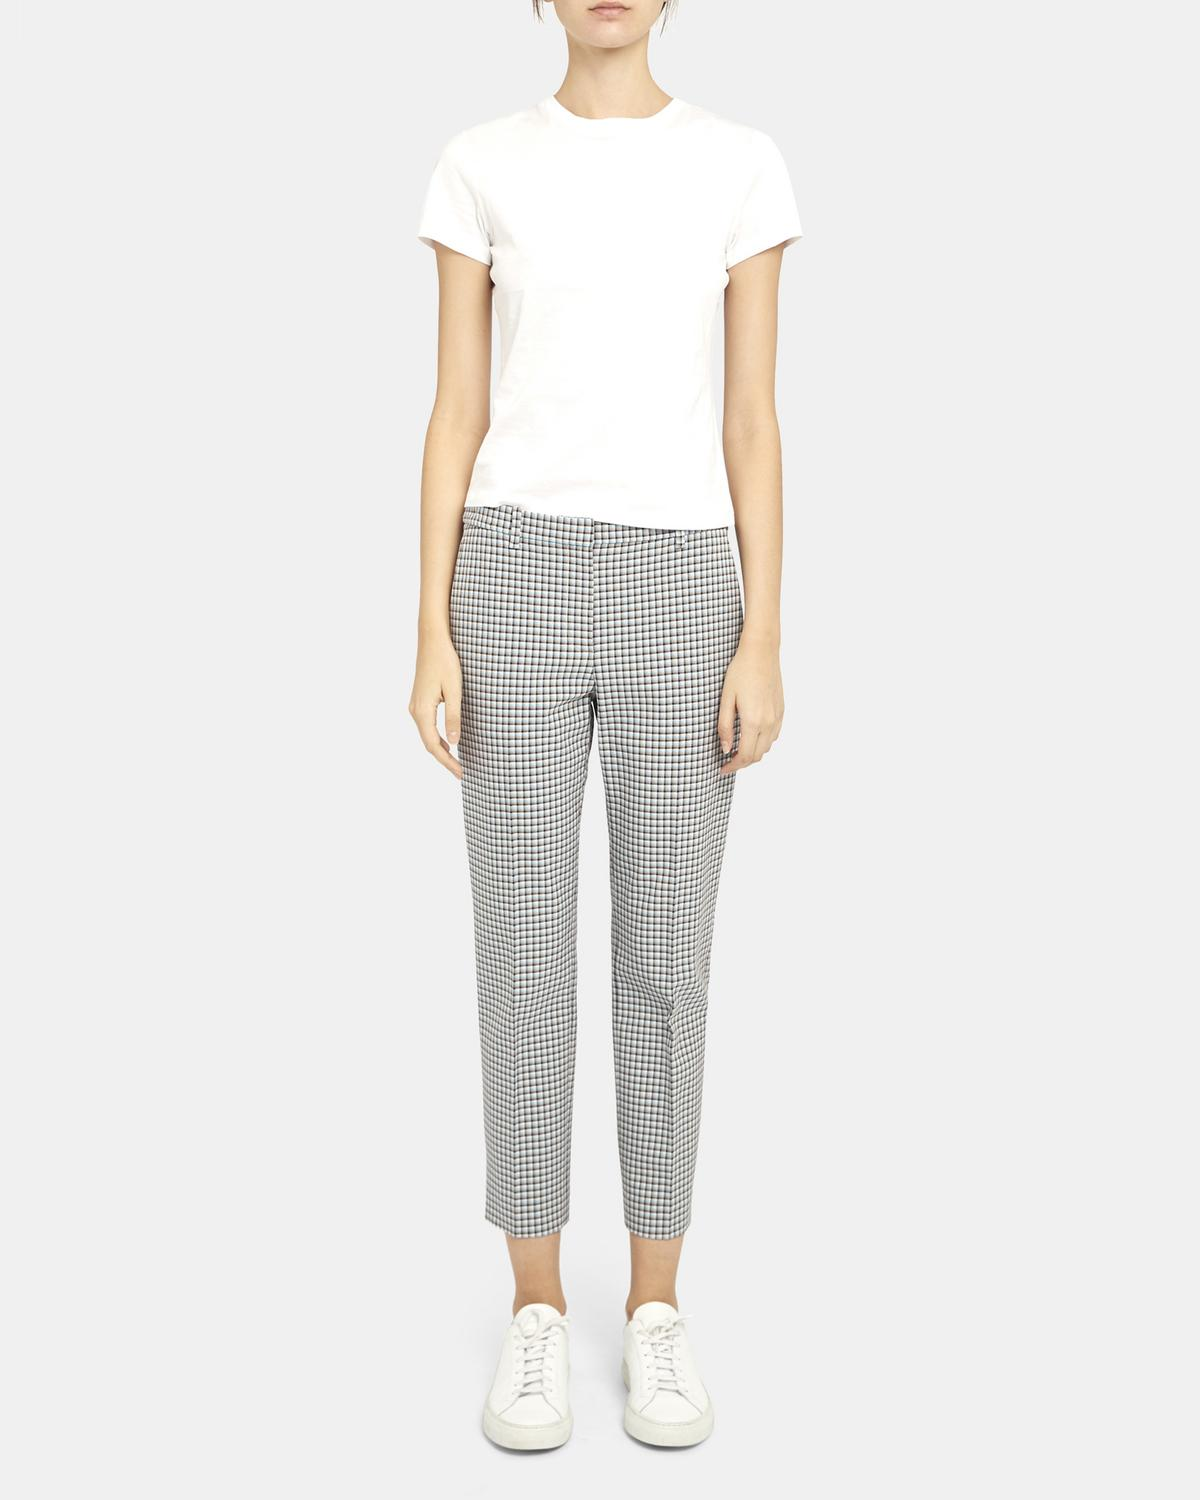 Treeca Pant in Check Viscose